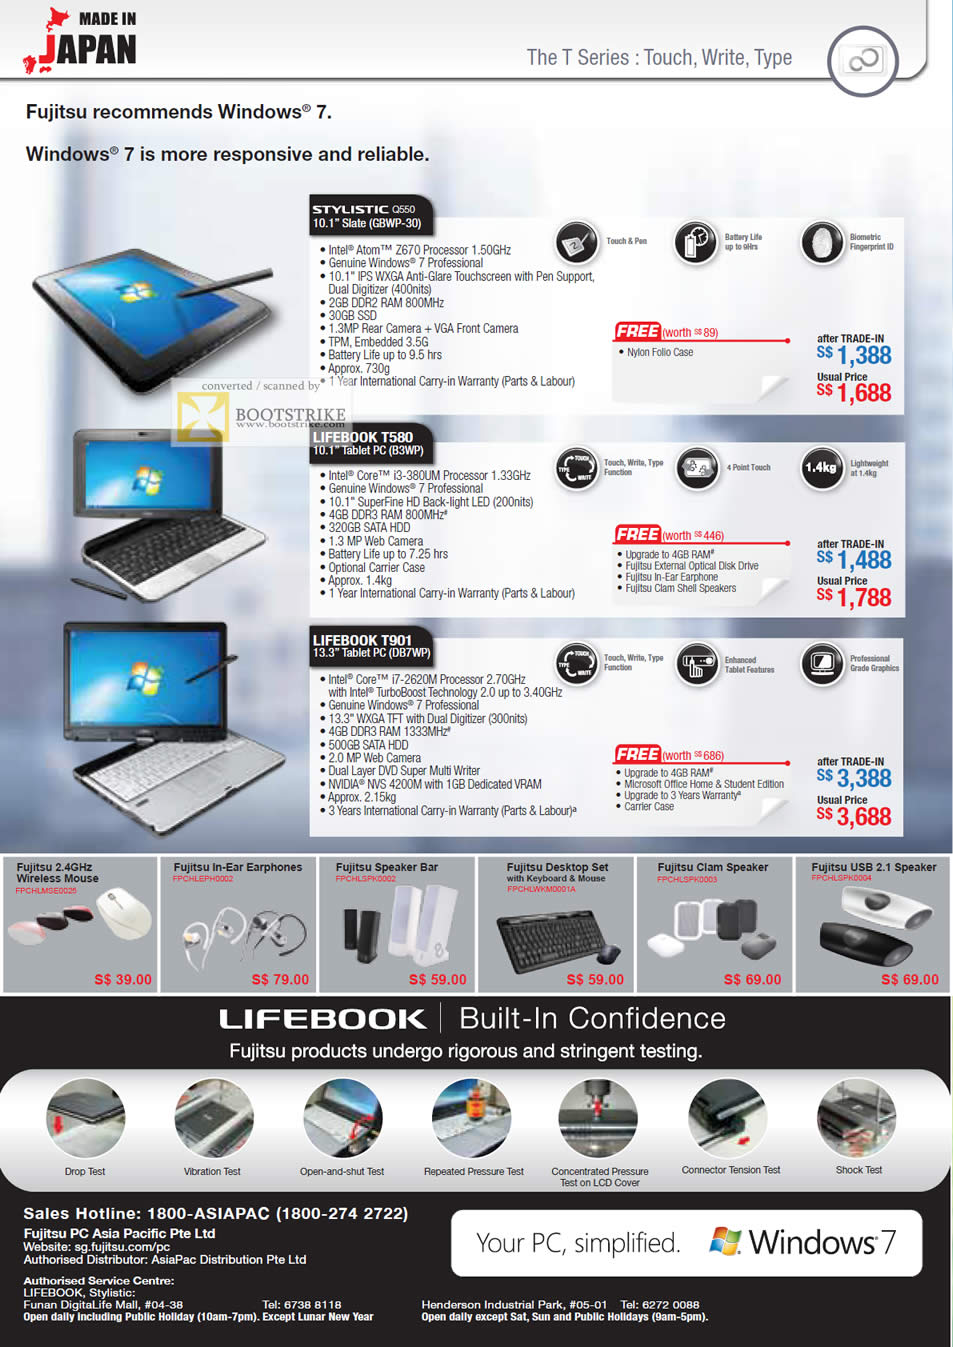 SITEX 2011 price list image brochure of Asiapac Fujitsu Notebooks Slate, Tablet PC, Stylistic Q550 GBWP-30, Lifebook T580 B3WP, T901 DB7WP, Mouse, Earphones, USB Speaker, Accessories